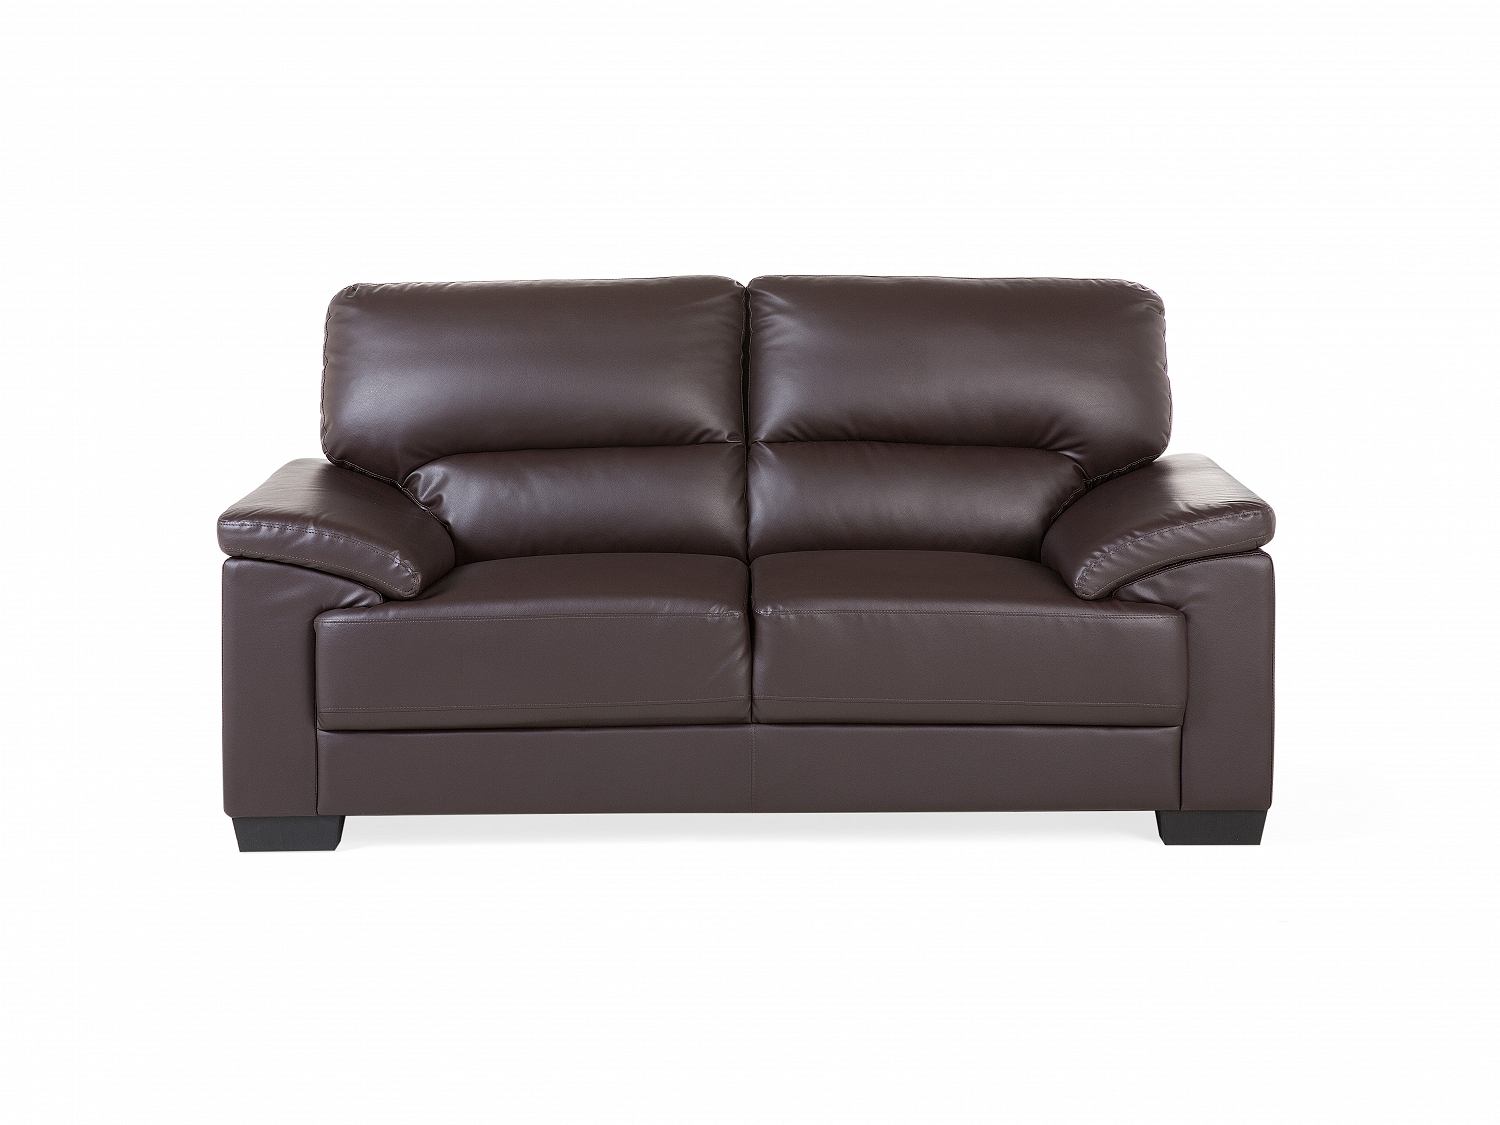 Brown faux leather sofa couch 2 seater settee love seat for Sofa 1 5 sitzer